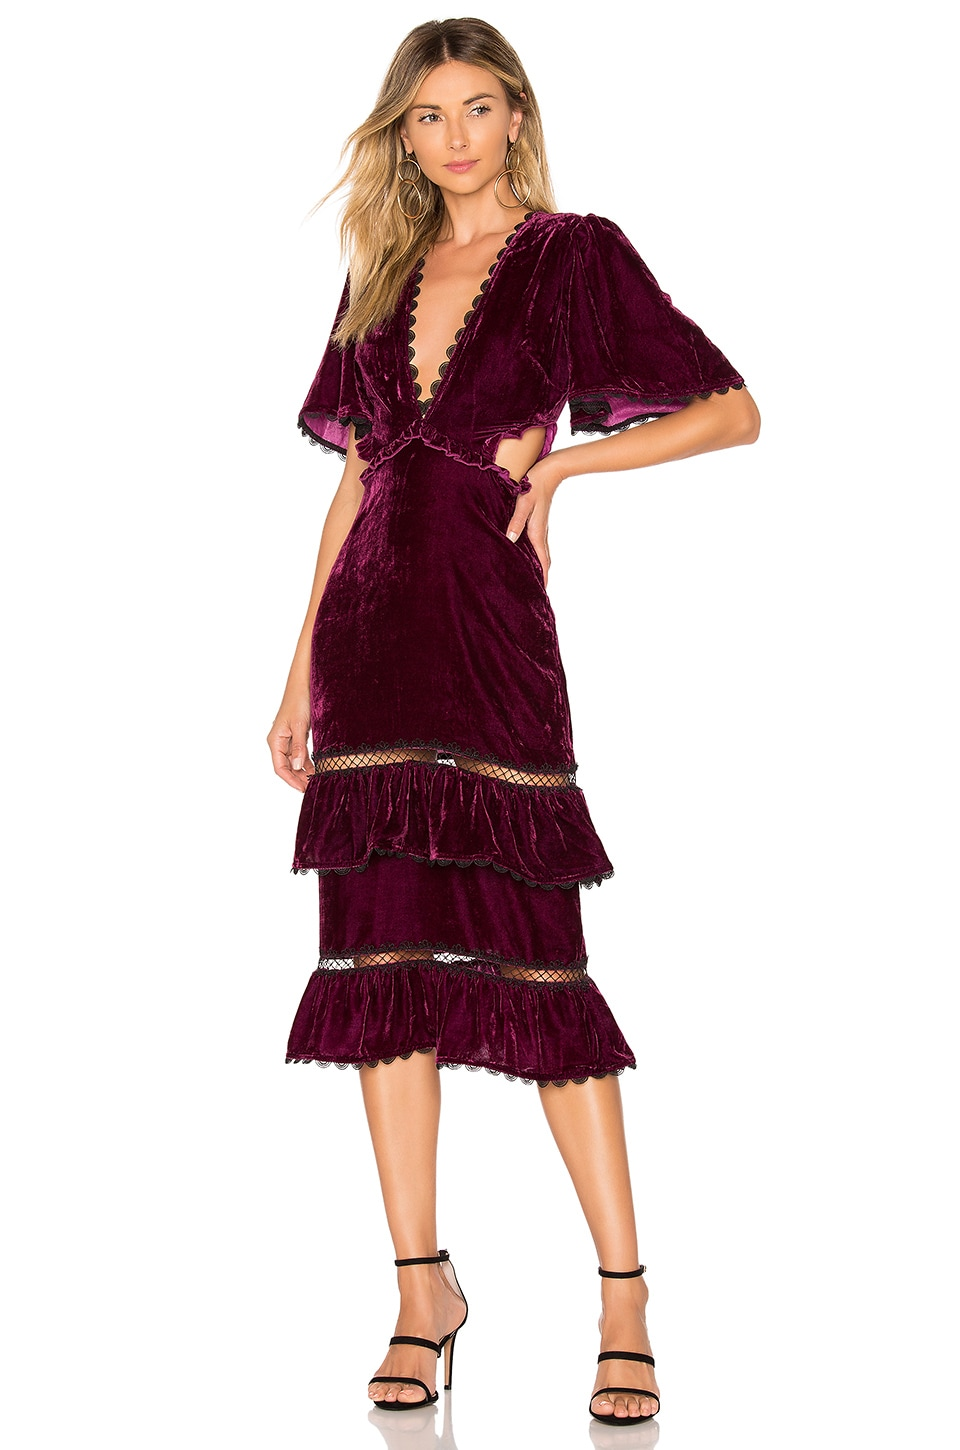 Tularosa Kaylee Dress in Plum